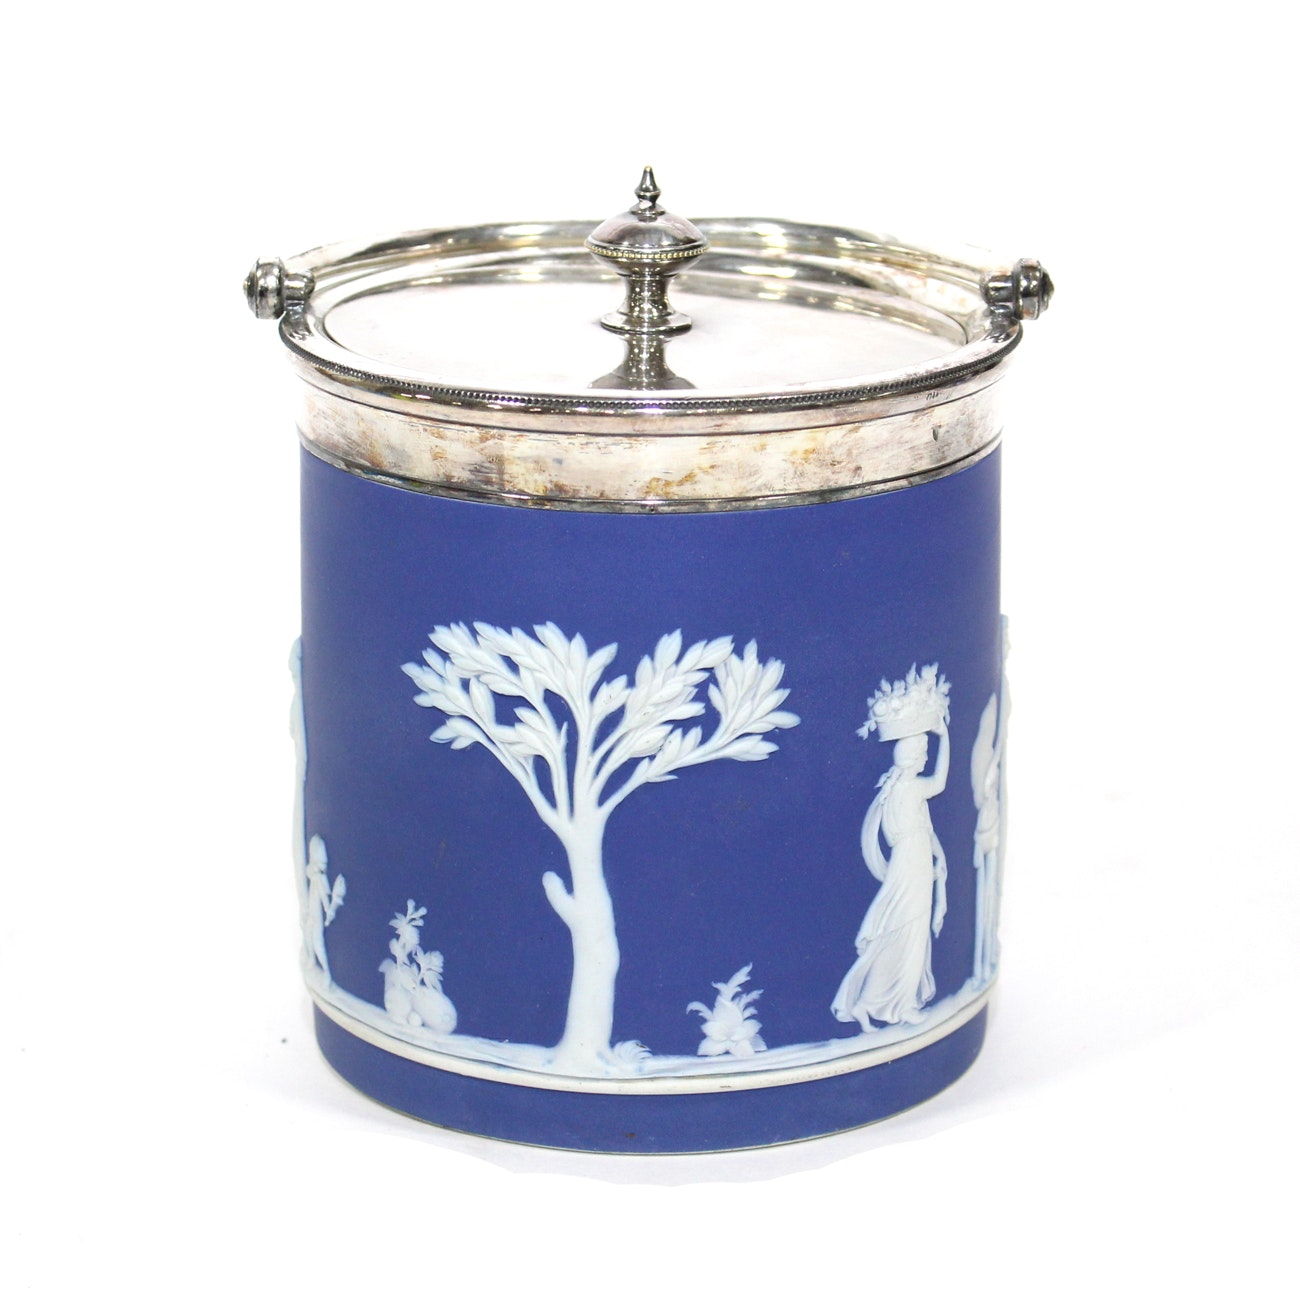 Wedgwood Blue Jasper and Silver Plated Biscuit Barrel, Early 20th Century